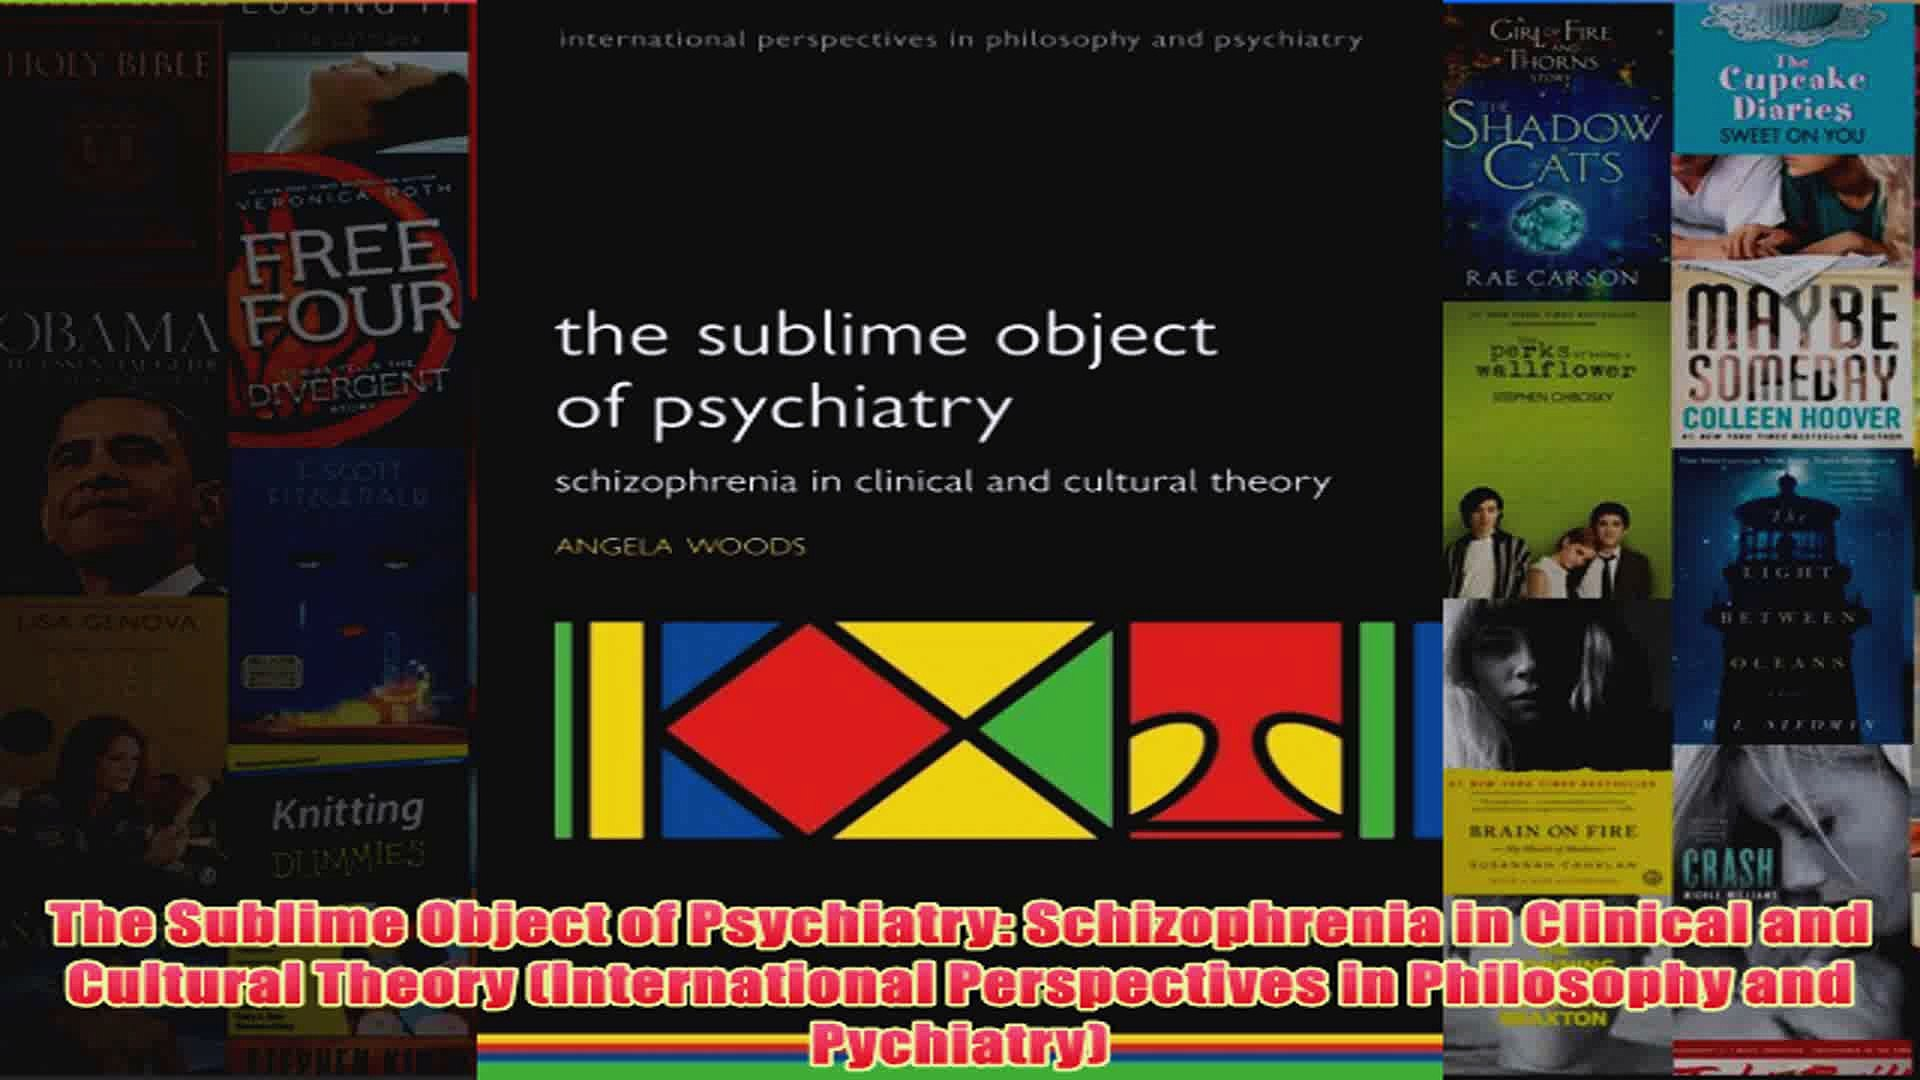 The Sublime Object of Psychiatry: Schizophrenia in Clinical and Cultural Theory